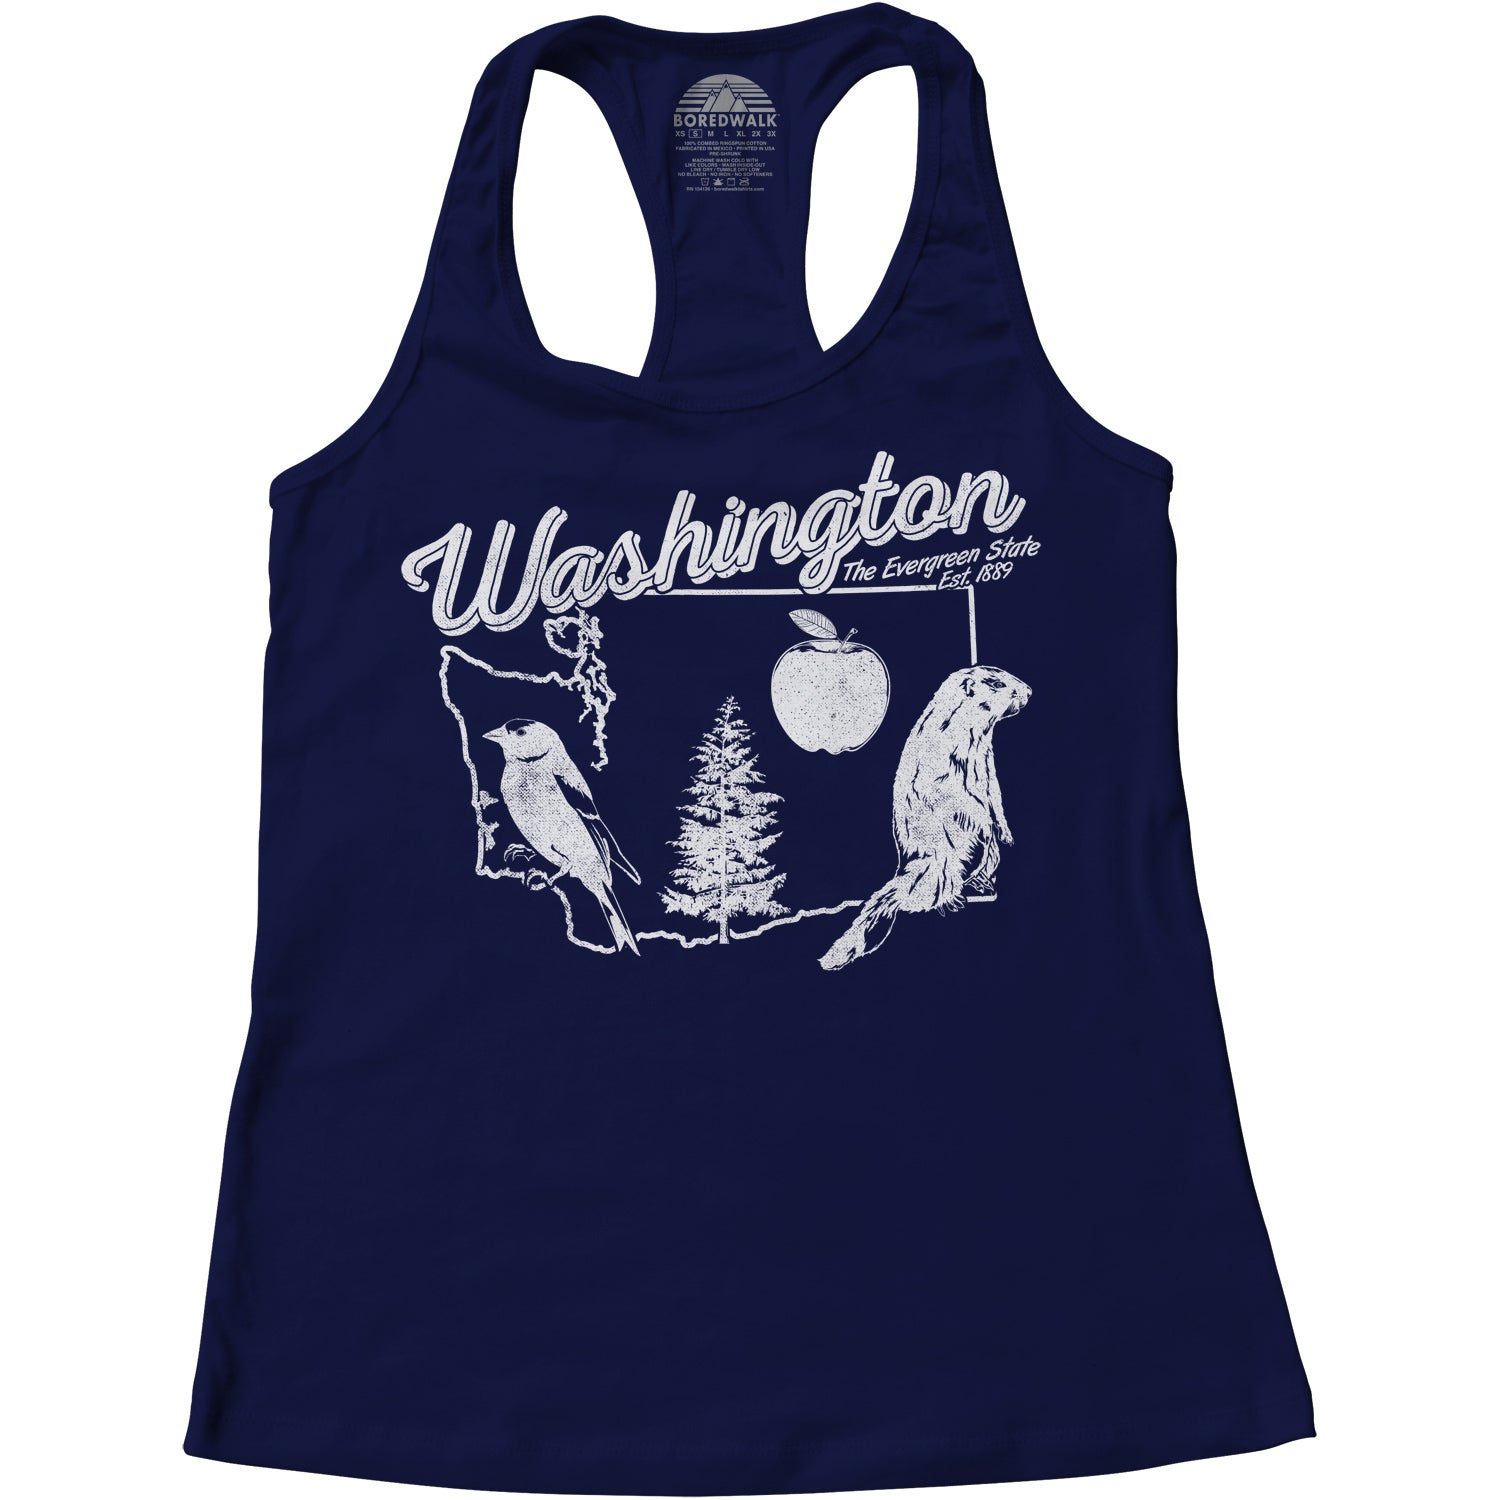 Women's Vintage Washington Racerback Tank Top